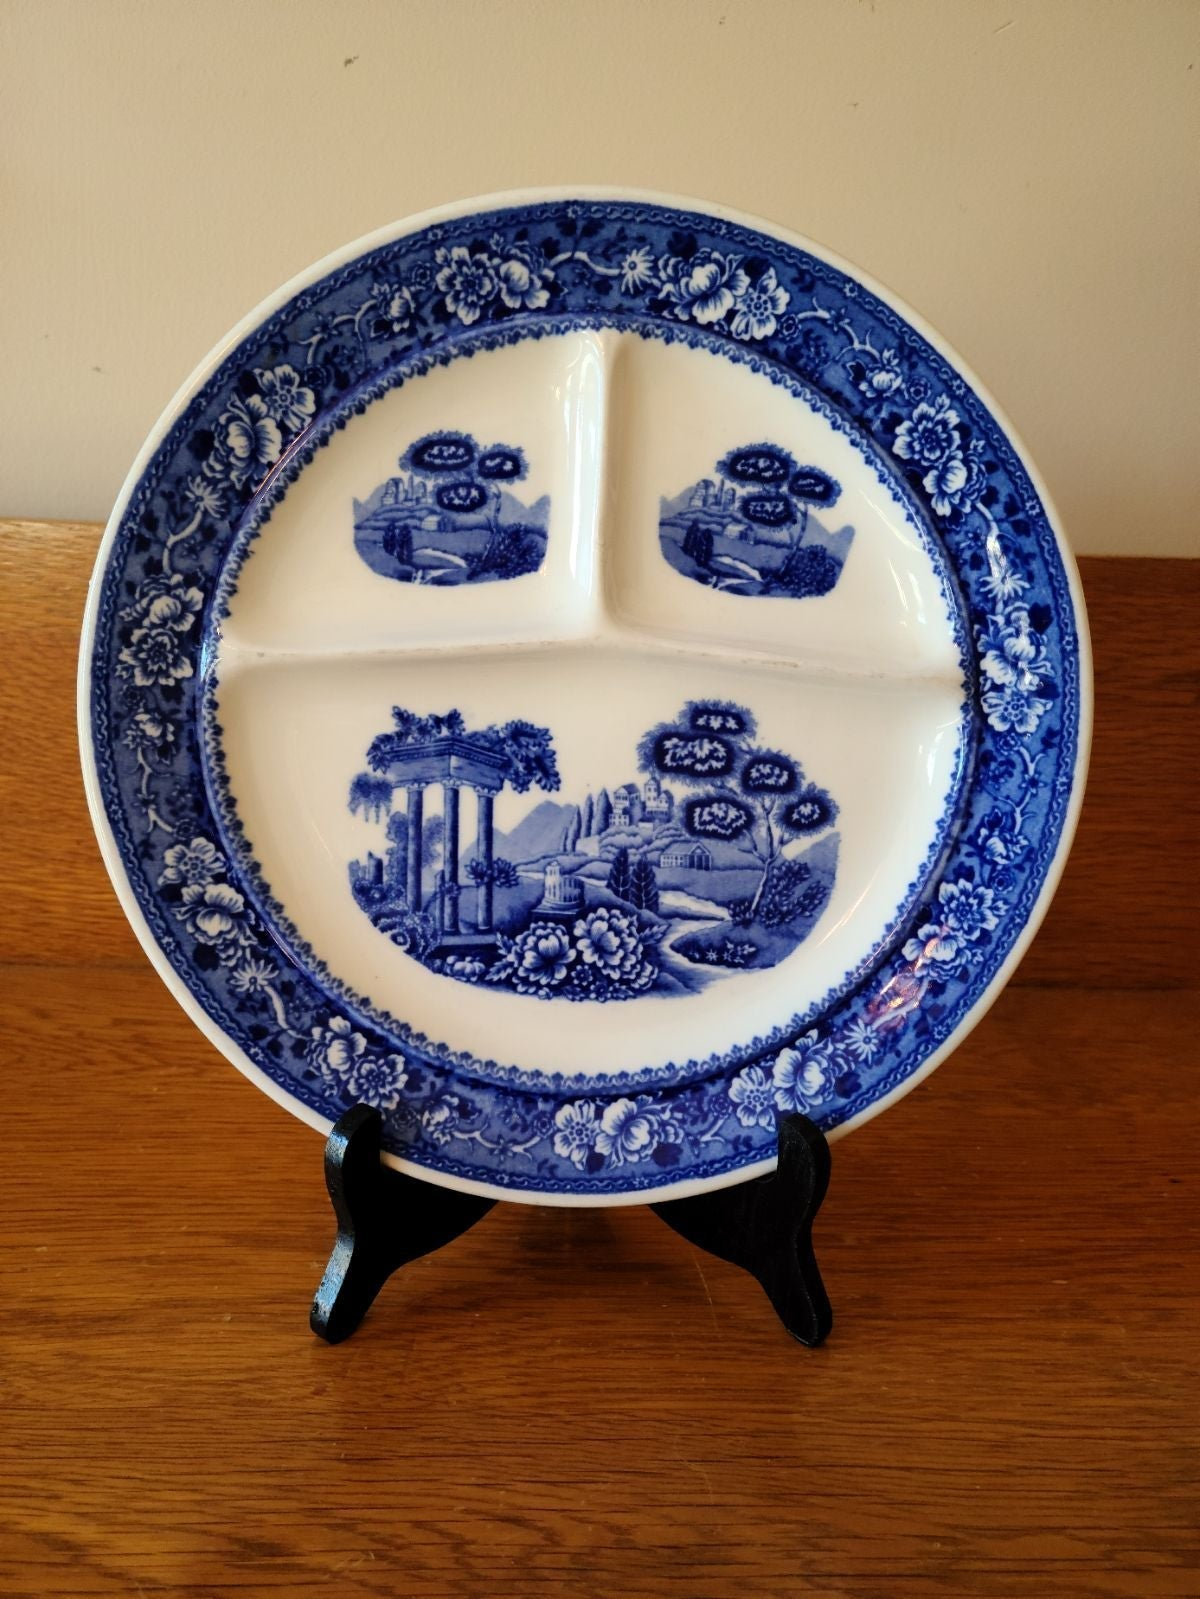 Warwick Tudor Rose Divided Grill Plate